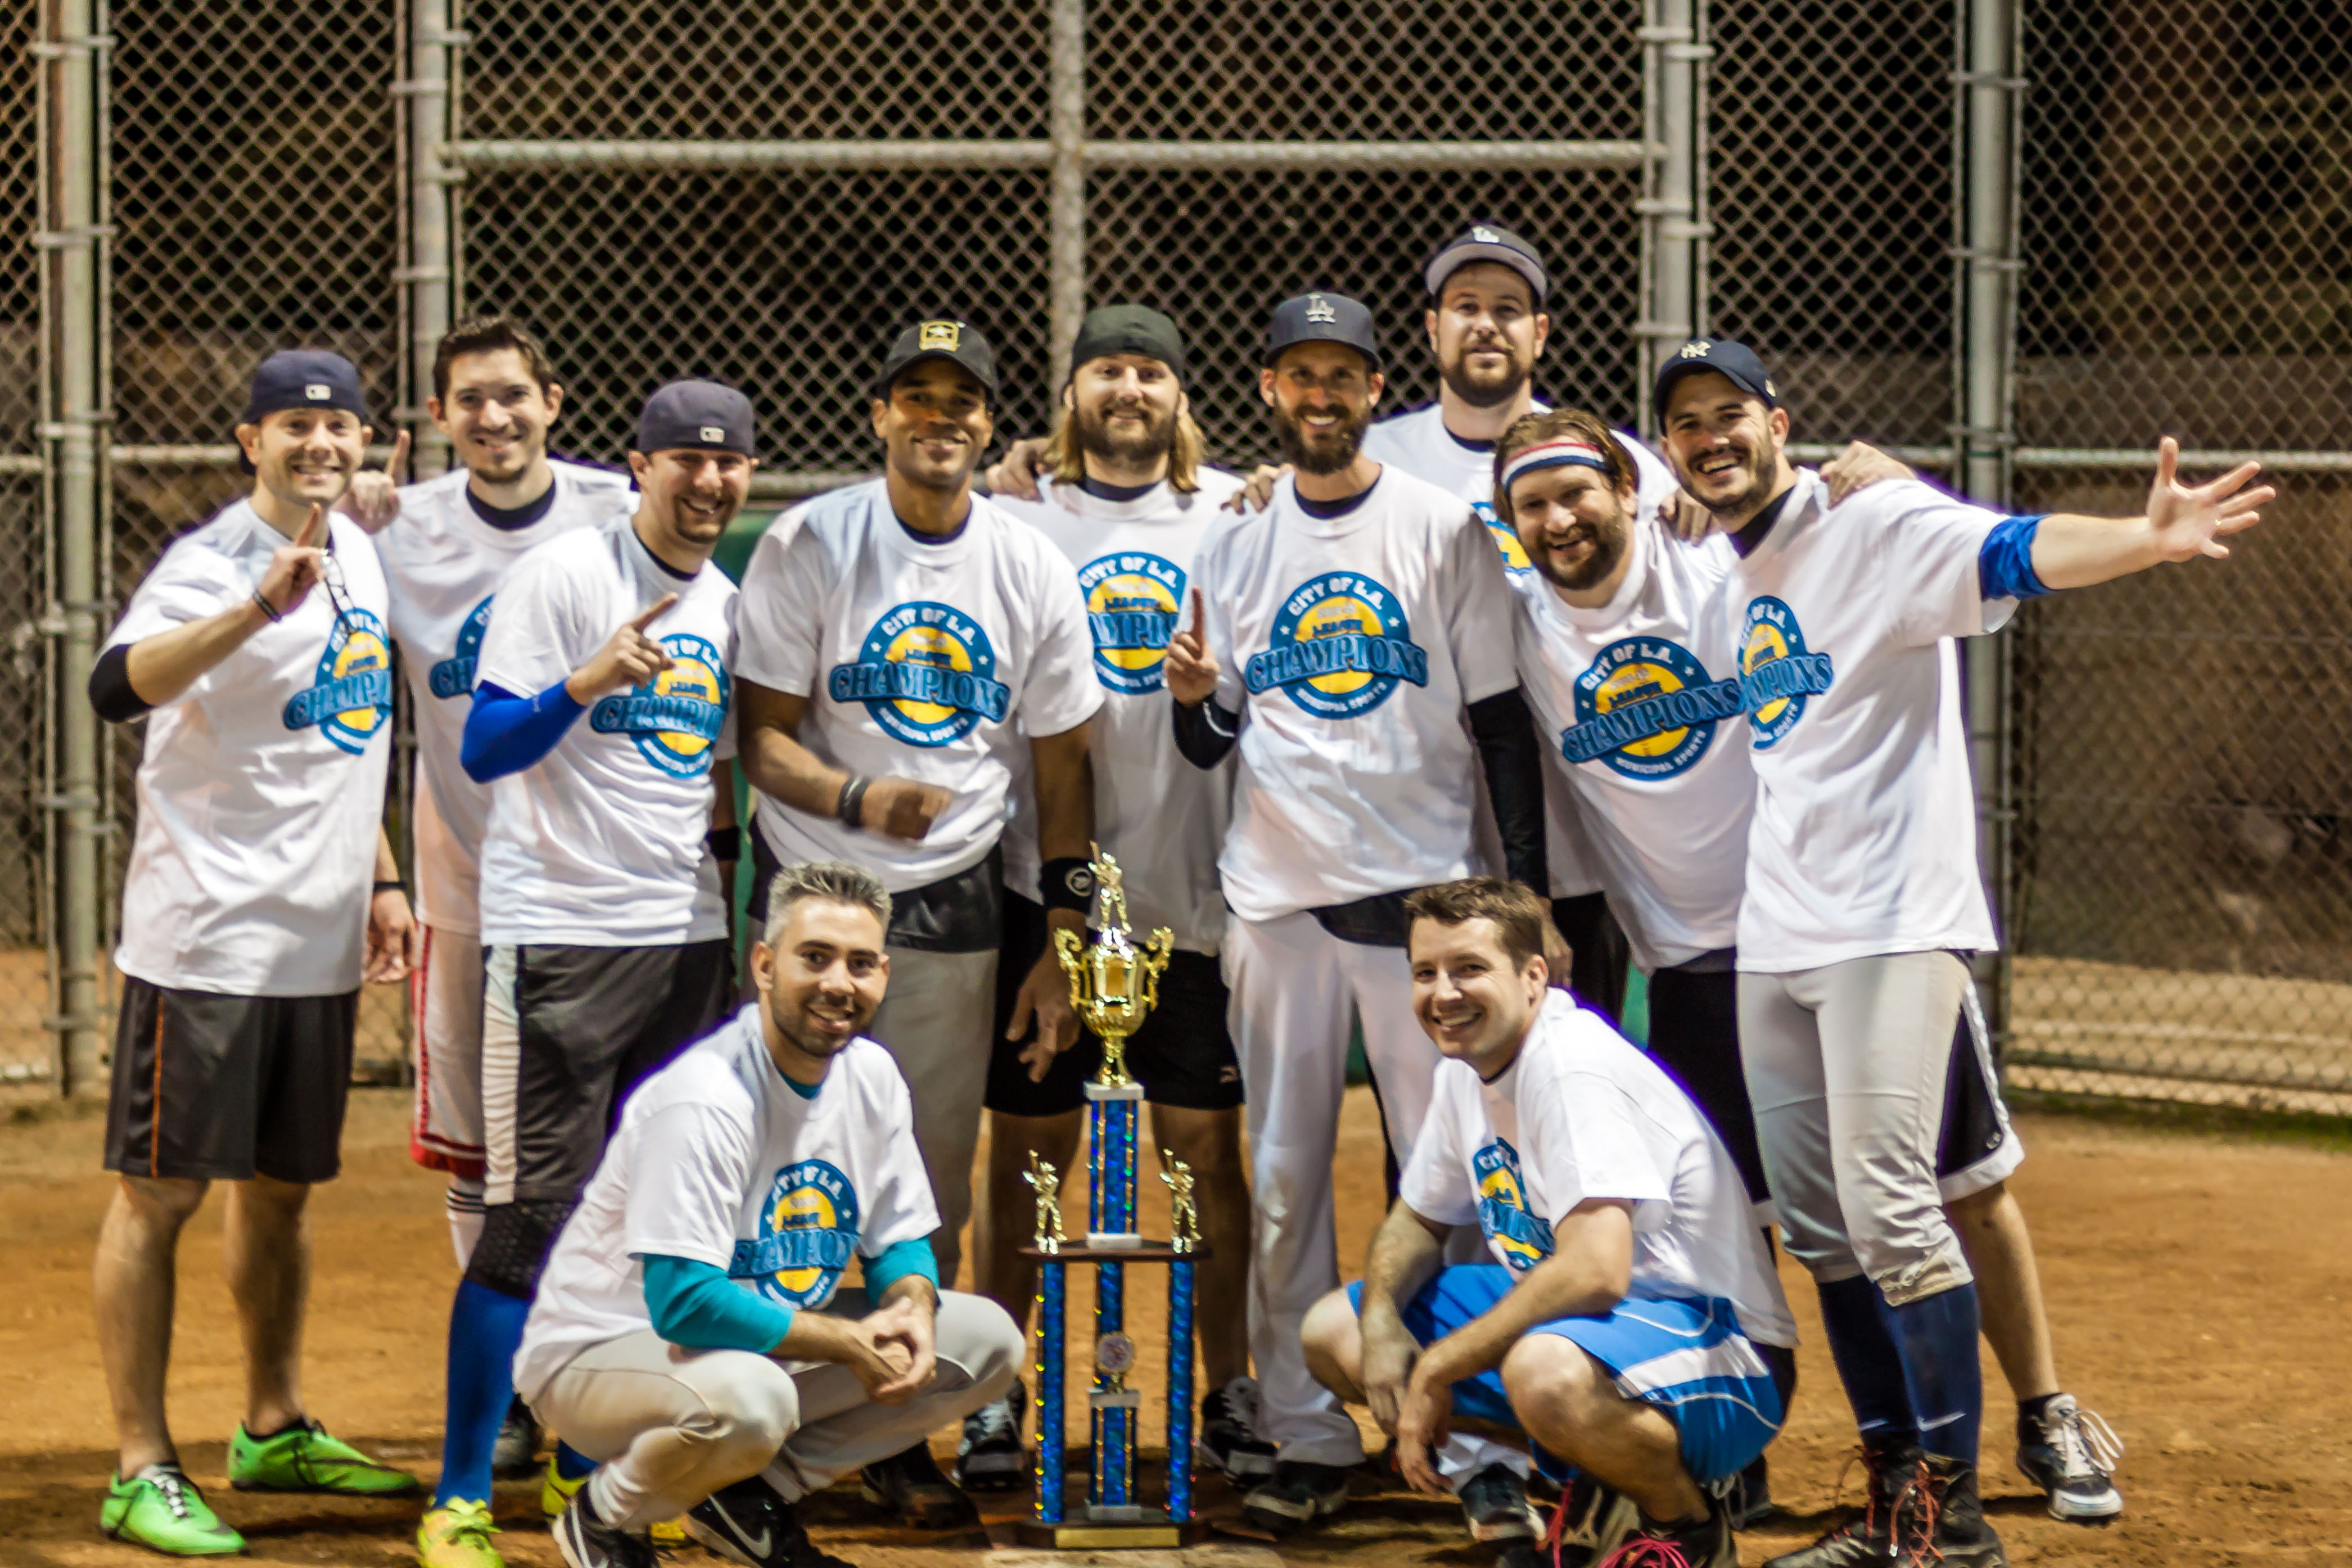 LA City Softball Championship - RAGs to Riches